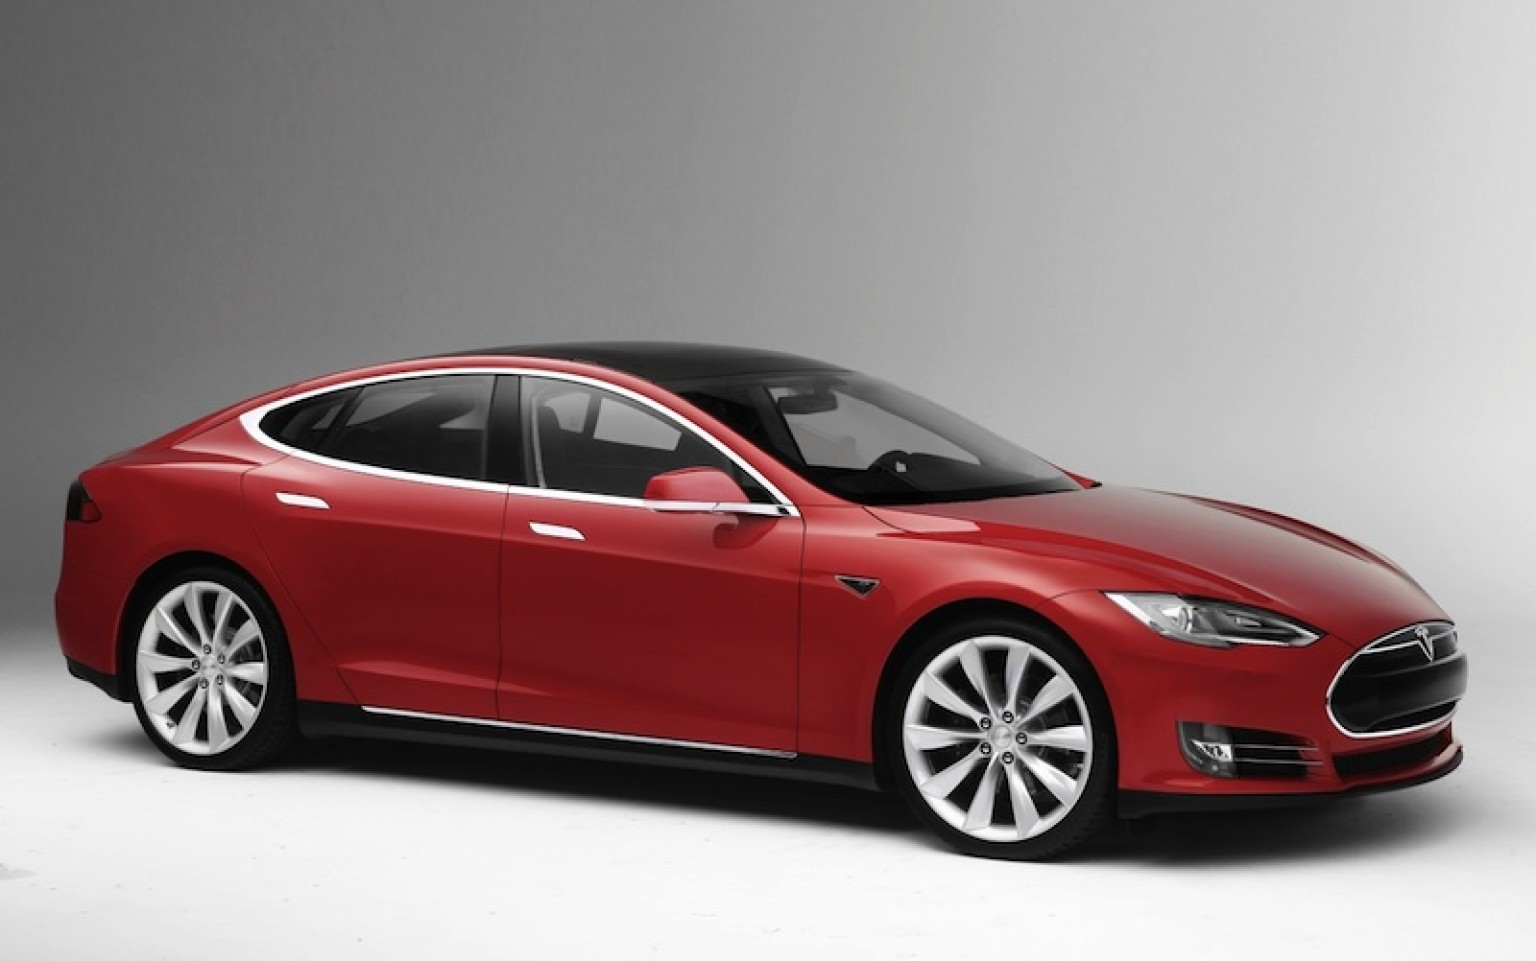 une hausse majeure du prix de vente de la tesla model s au canada. Black Bedroom Furniture Sets. Home Design Ideas